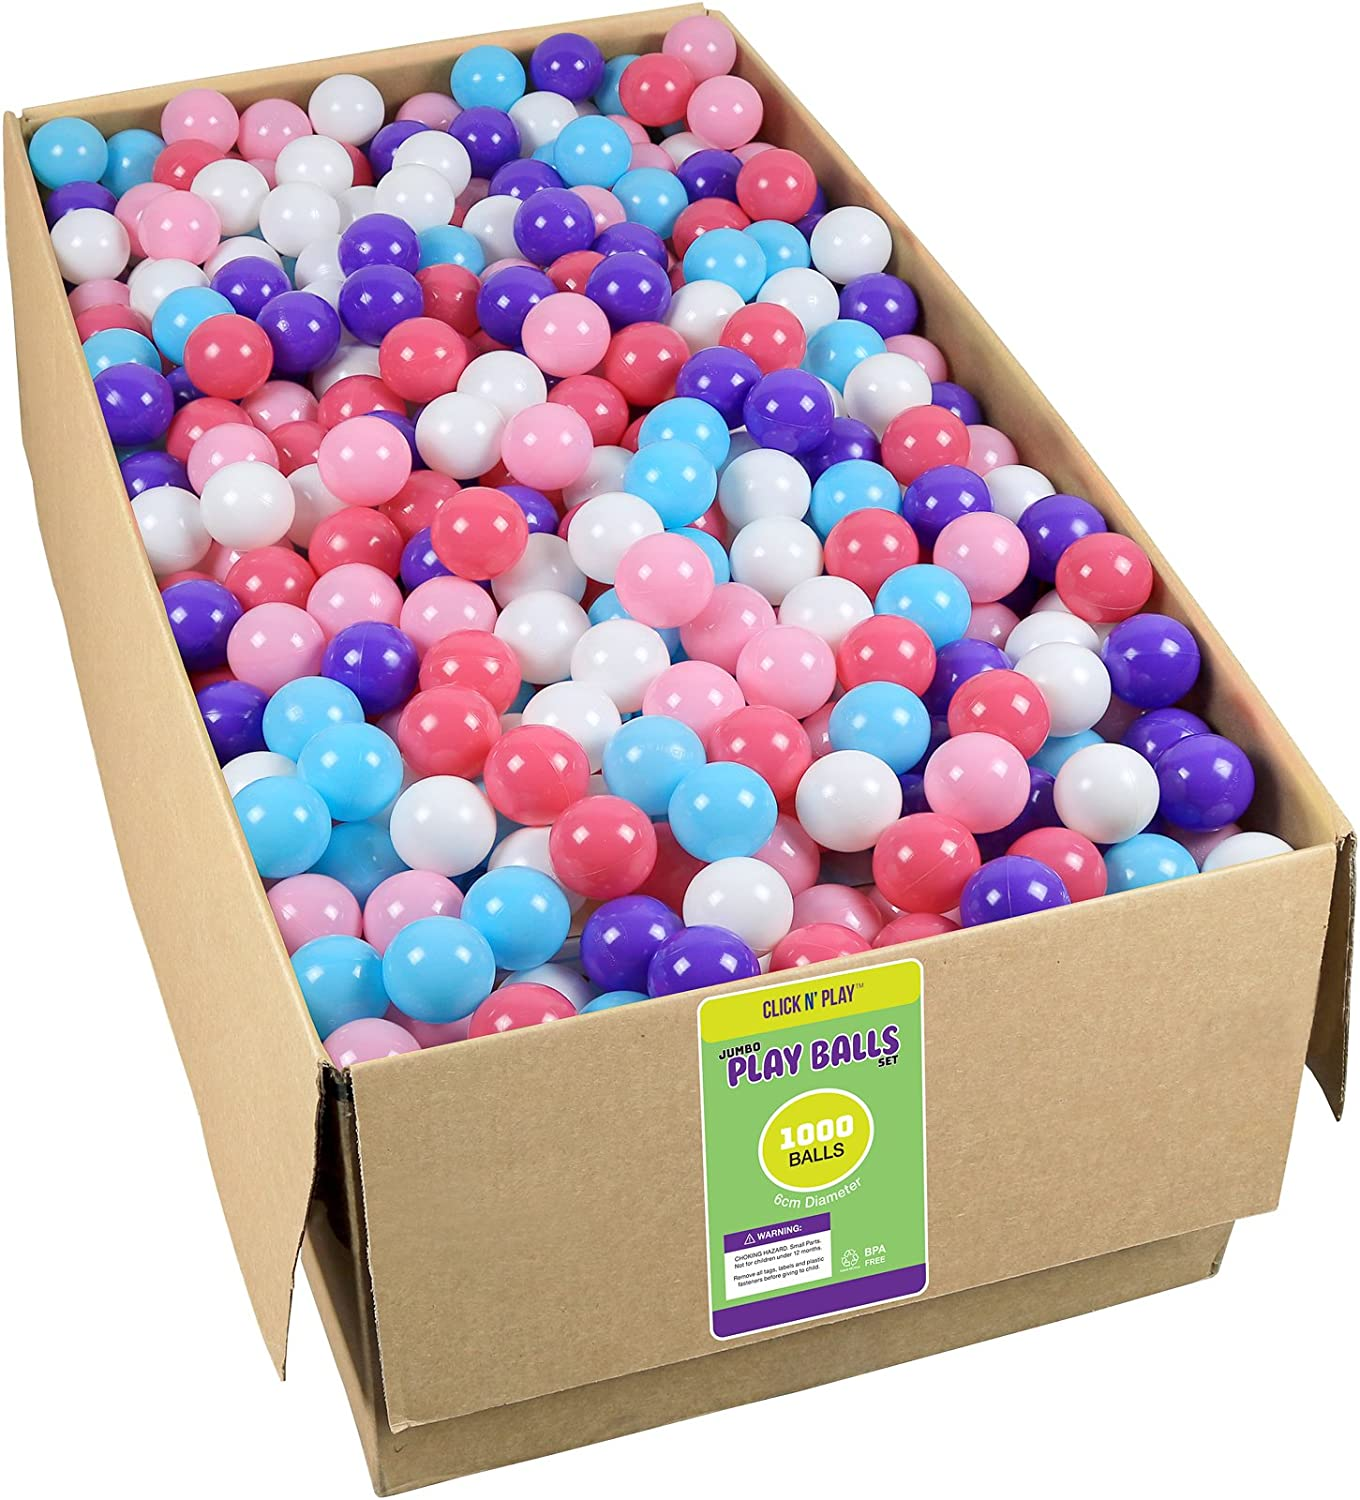 Click N' Play Value Pack of 200 Crush Proof Plastic Play Balls, Phthalate Free BPA Free, 5 Pretty Feminine Colors in Reusable Mesh Storage Bag with Zipper-LITTLE PRINCESS EDITION Click N' Play CNP9699